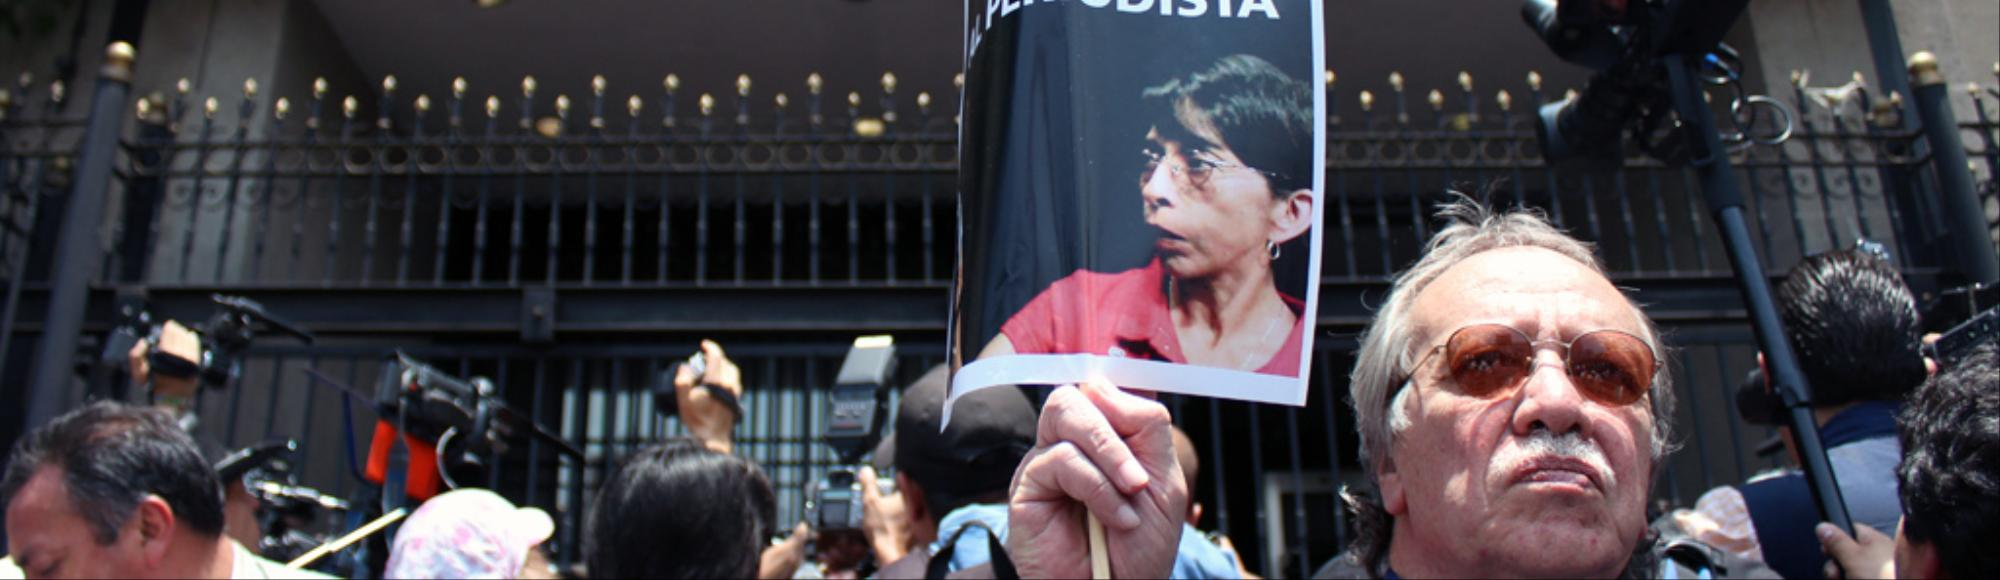 Mexico Is a Killing Ground for Journalists